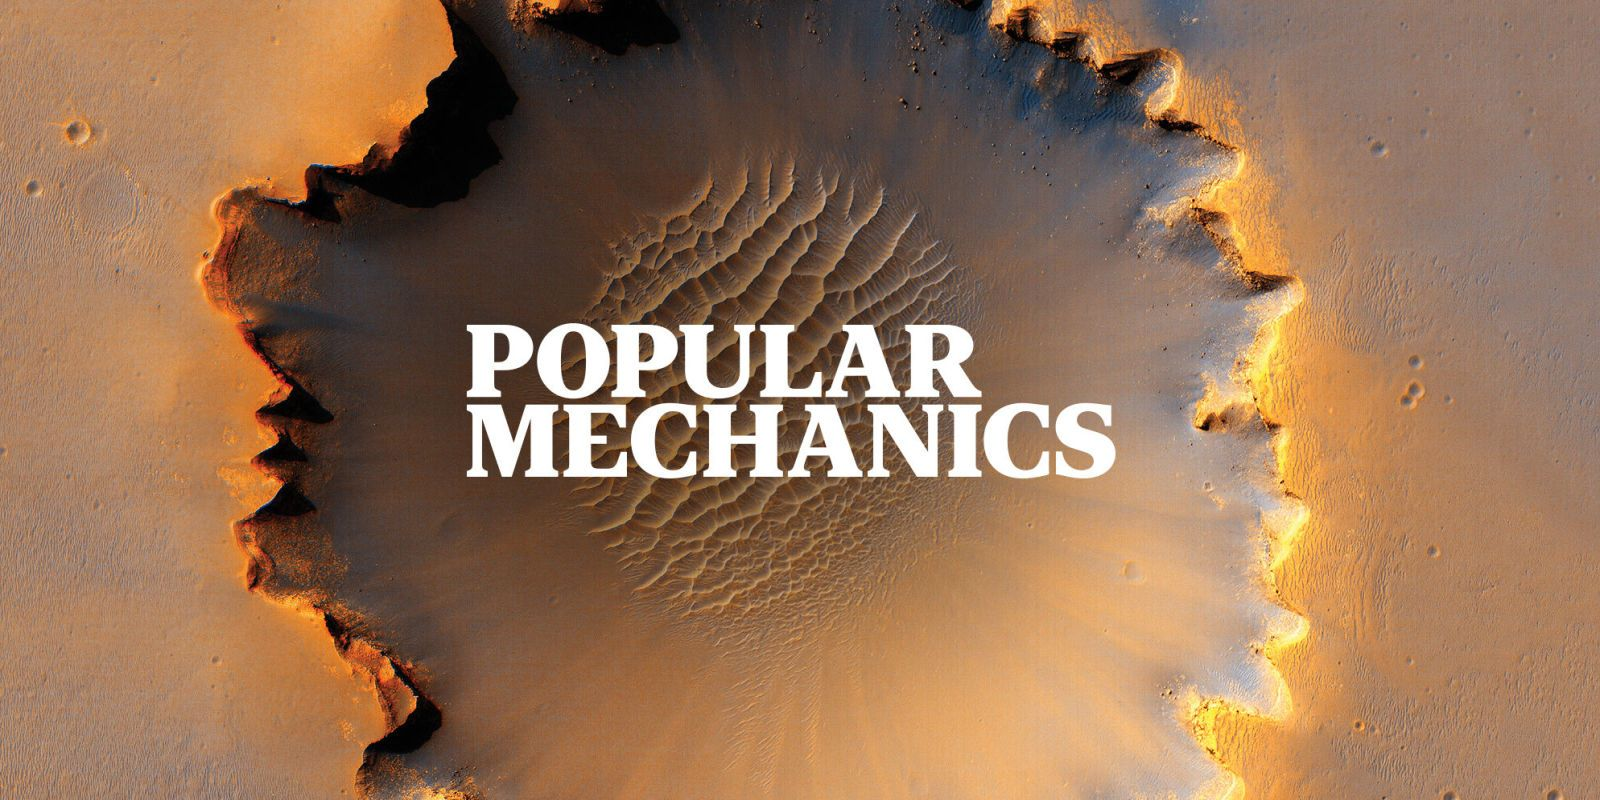 Sign Up Now to Receive the Popular Mechanics Newsletter